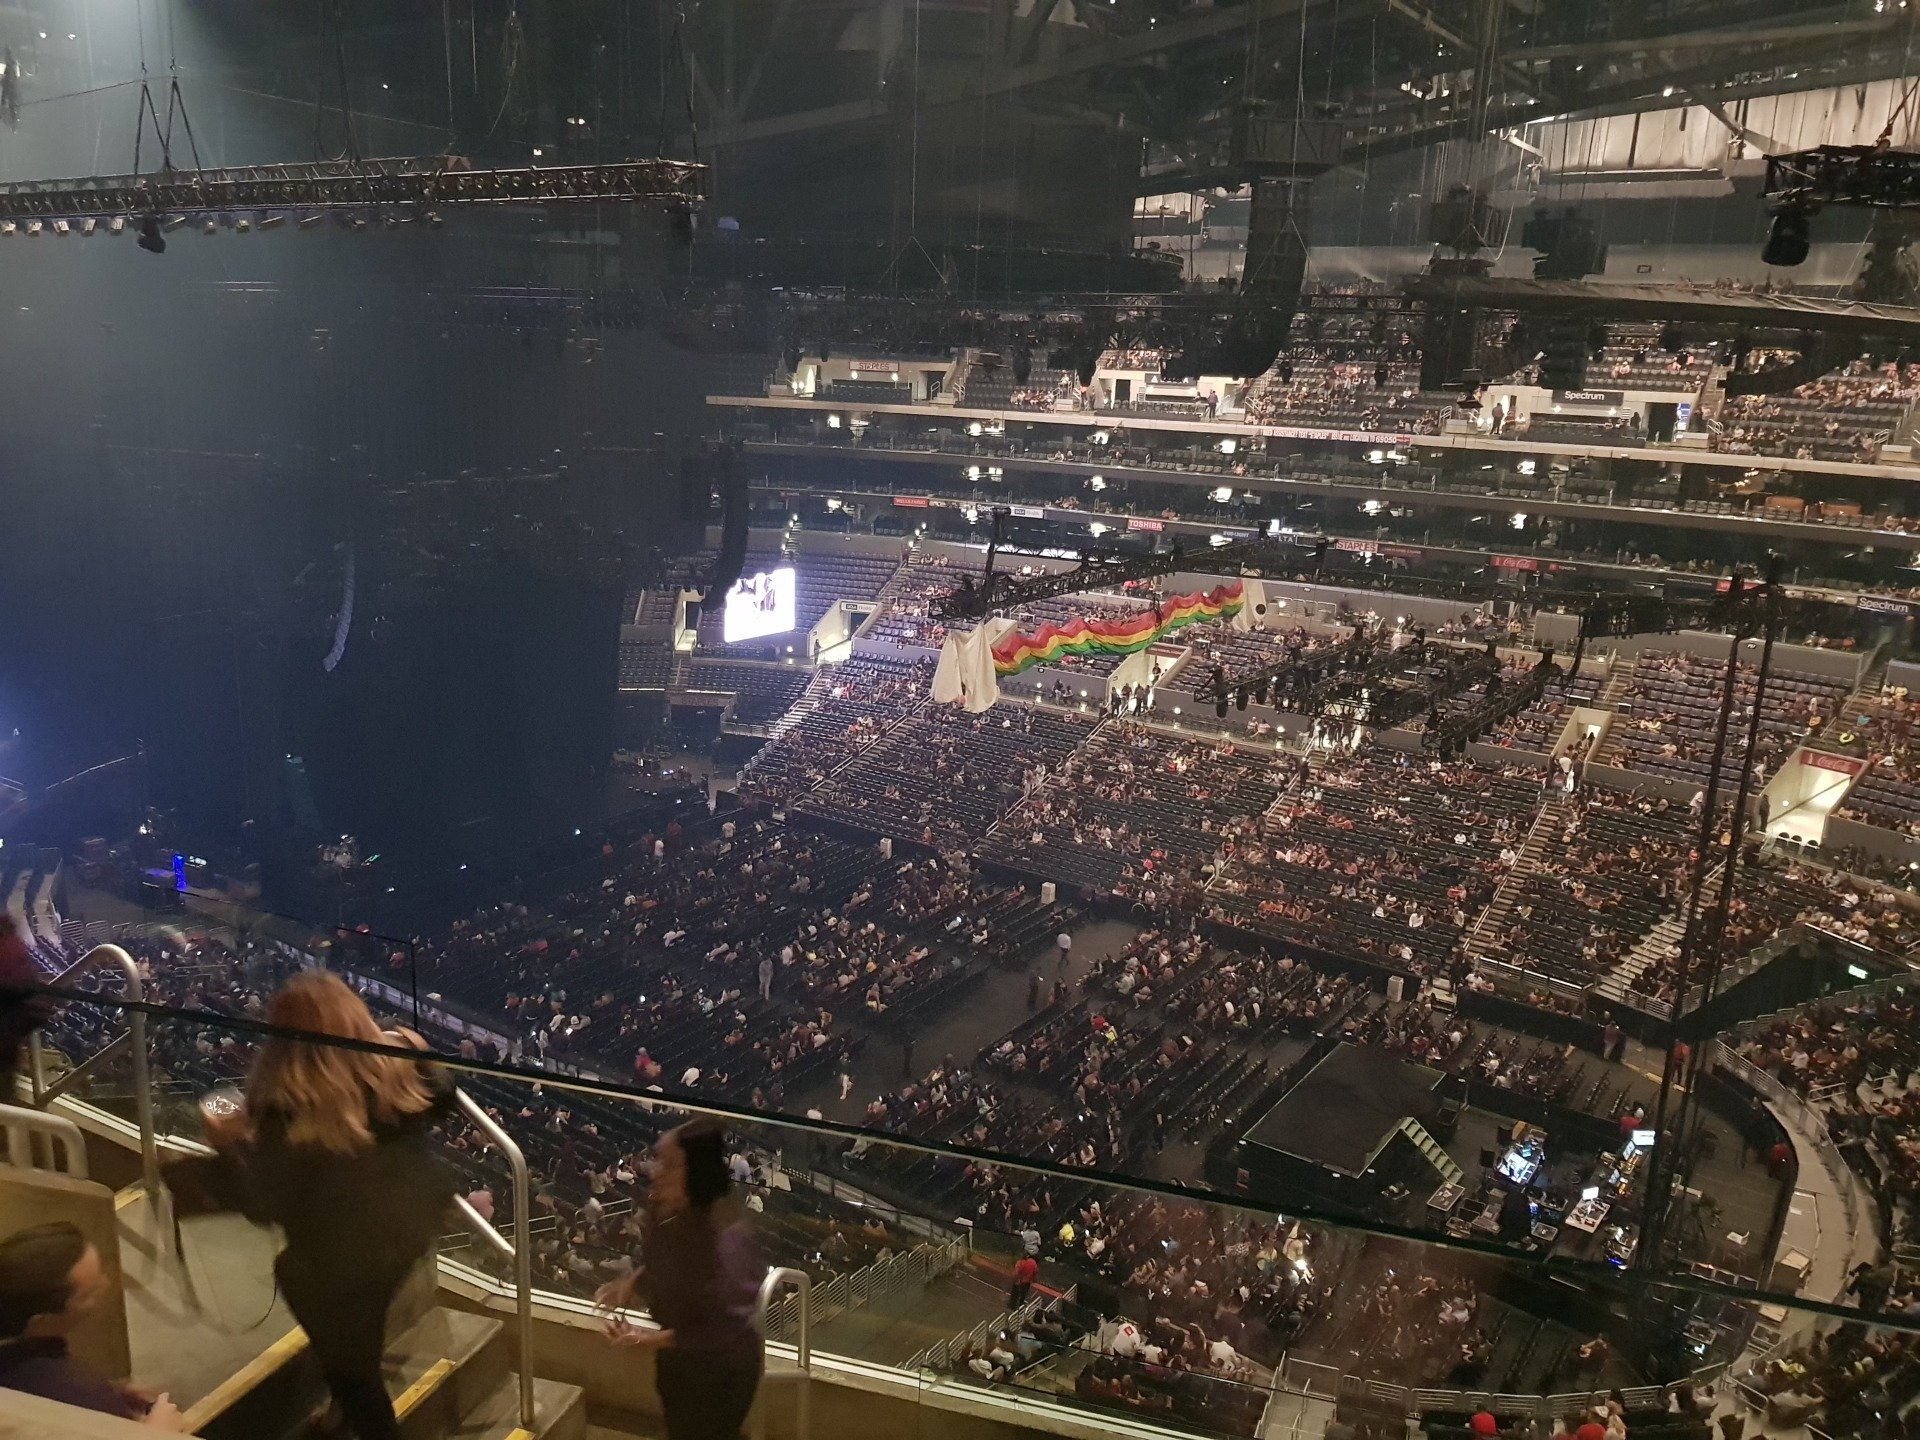 Staples Center Section 315 Row 6 Seat 18